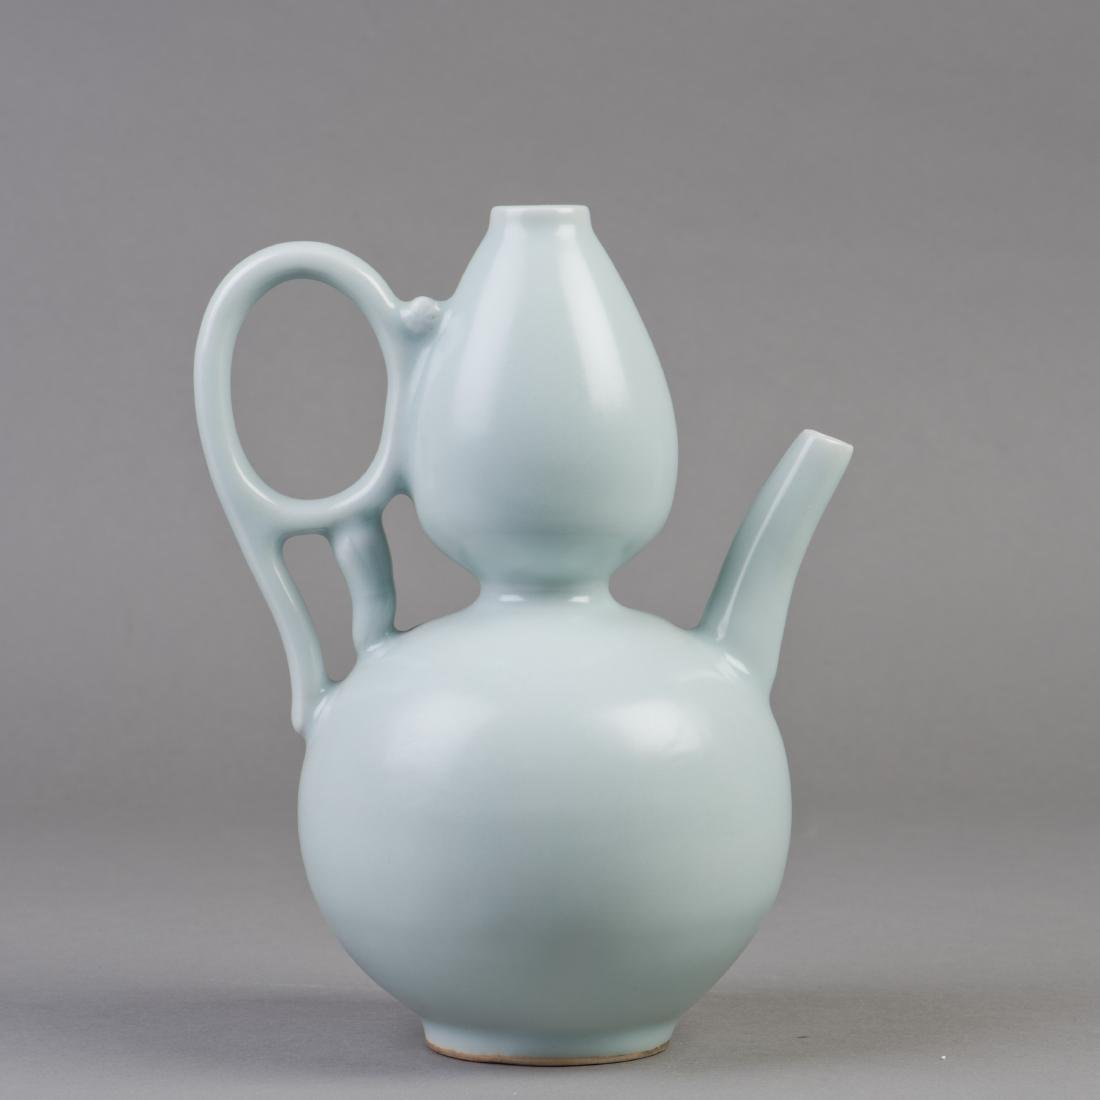 A CHINESE GOURD-SHAPED CELADON PORCELAIN VASE